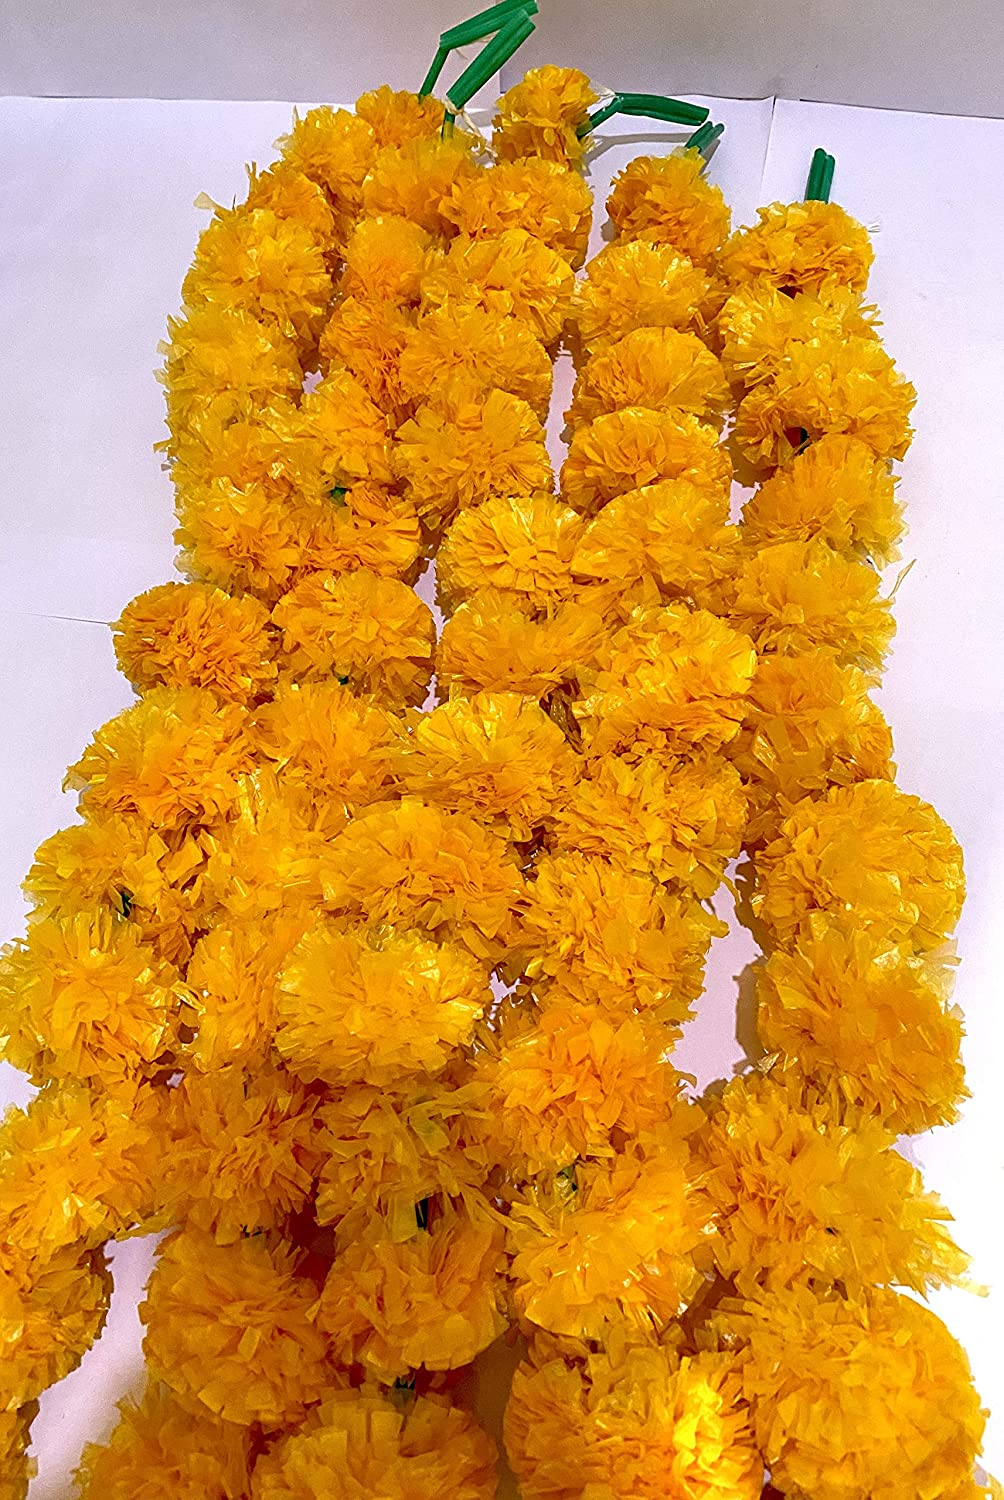 5 Pack Artificial Orange Marigold Flower Garlands 5ft Long for Home Decoration, Photo Prop, Door Hanging, Window Valance, Pooja Decoration, Diwali Christmas Parties, Weddings, Indian Theme Decorations